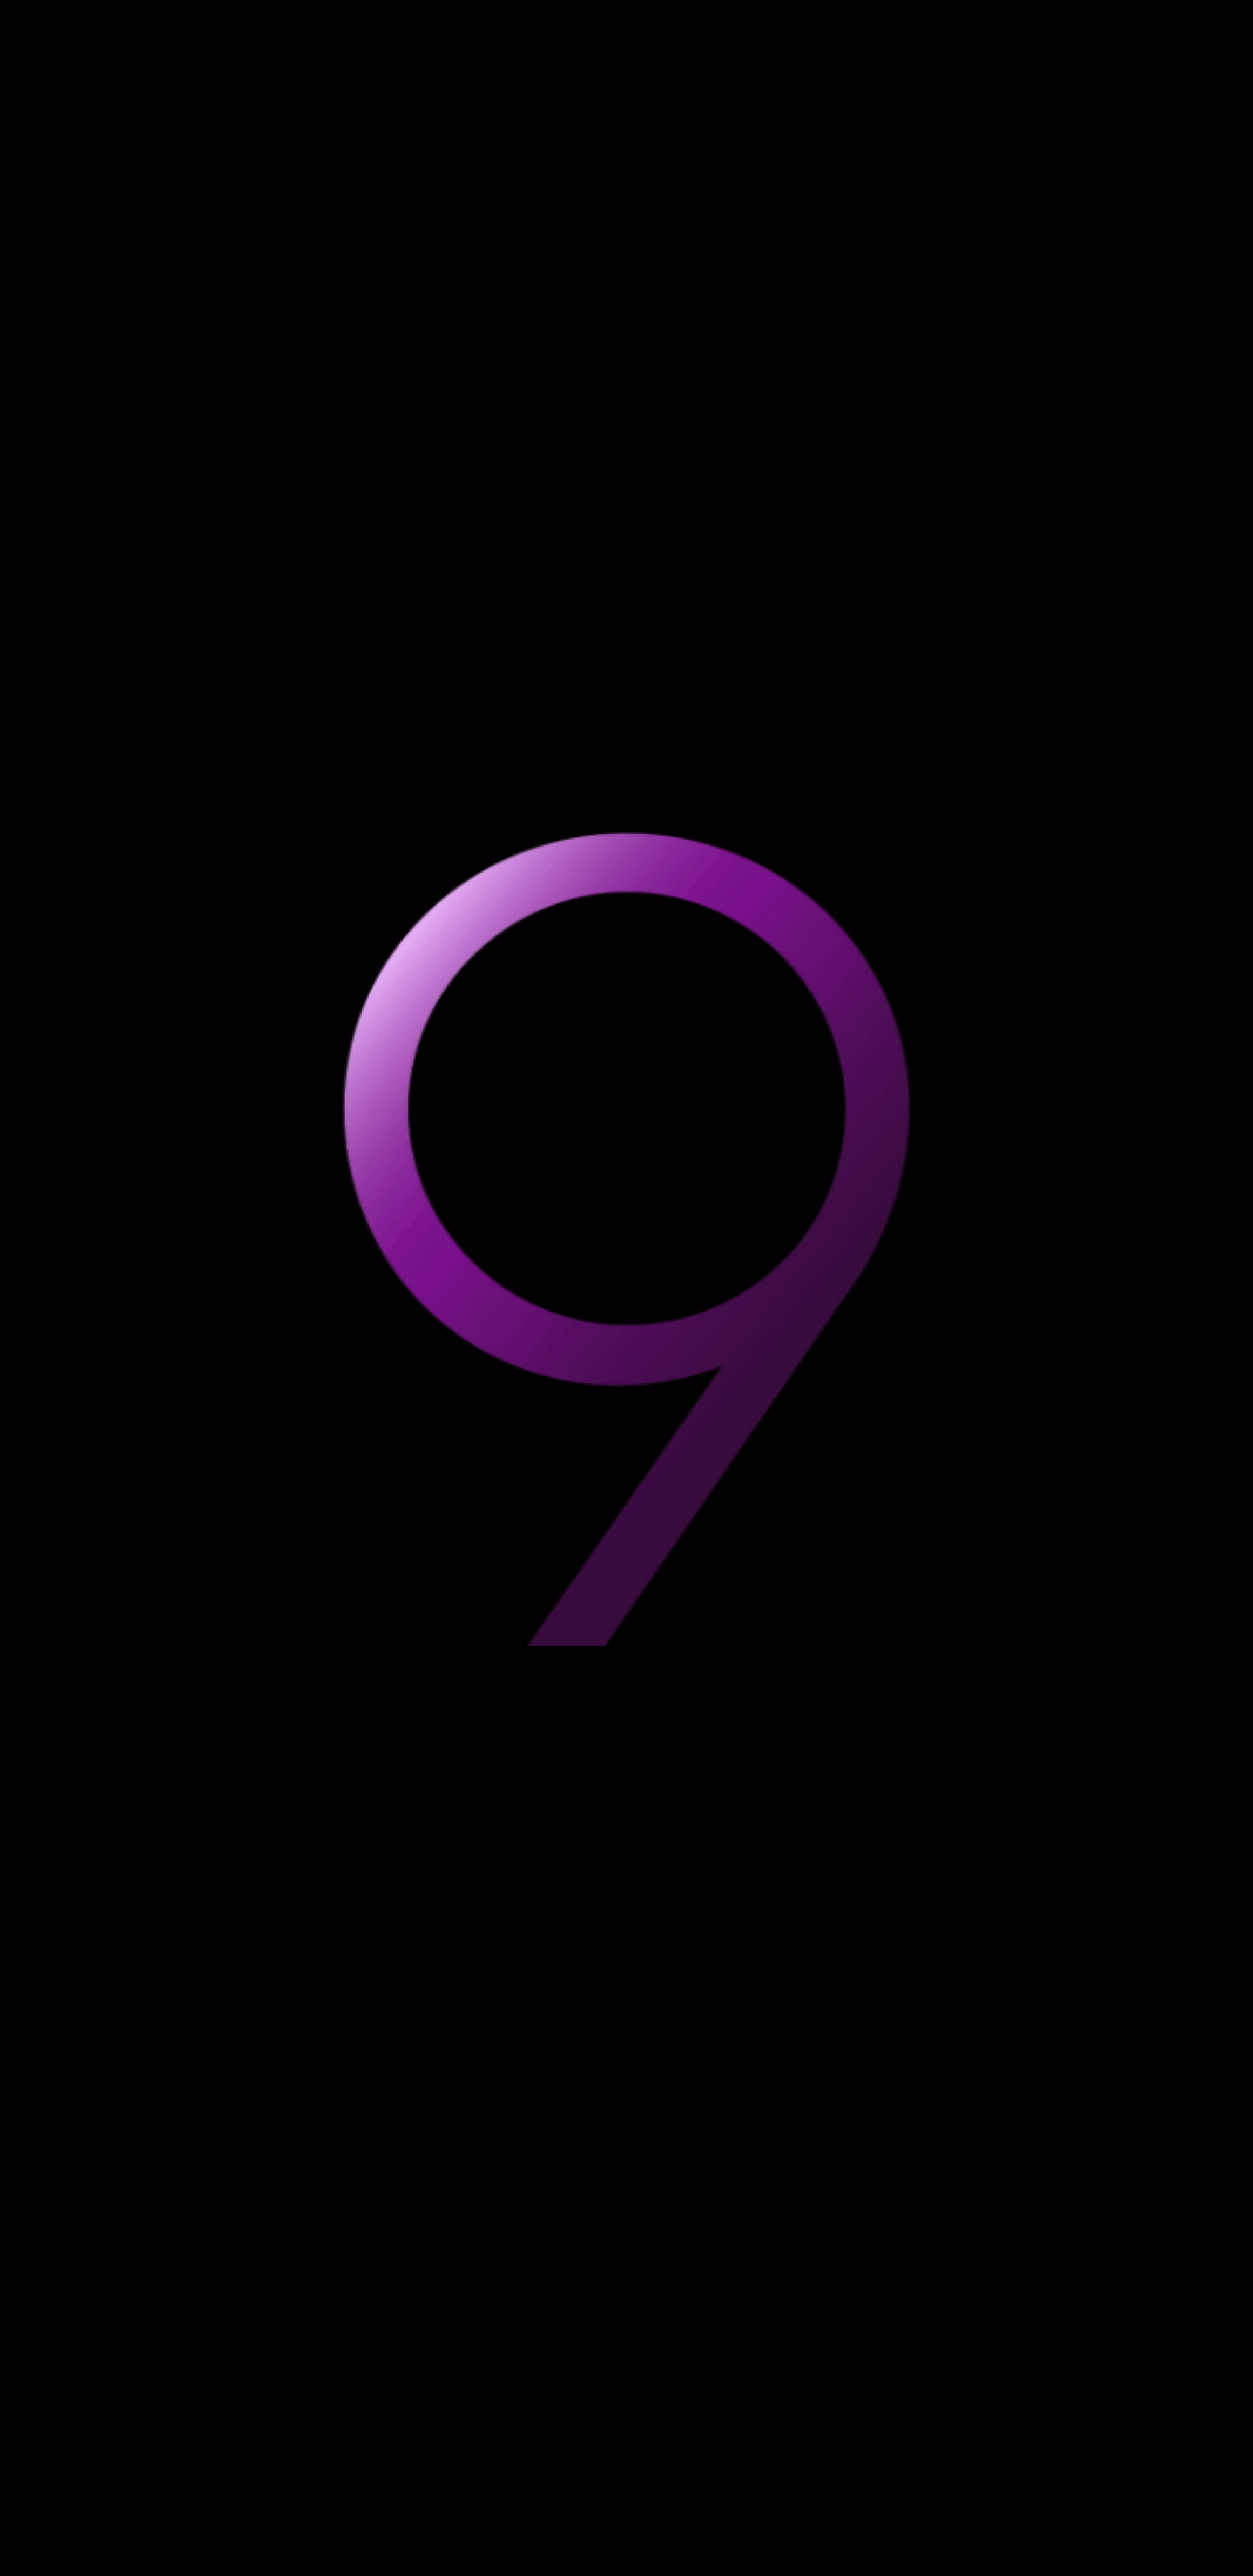 Samsung Galaxy S9 Plus Wallpapers